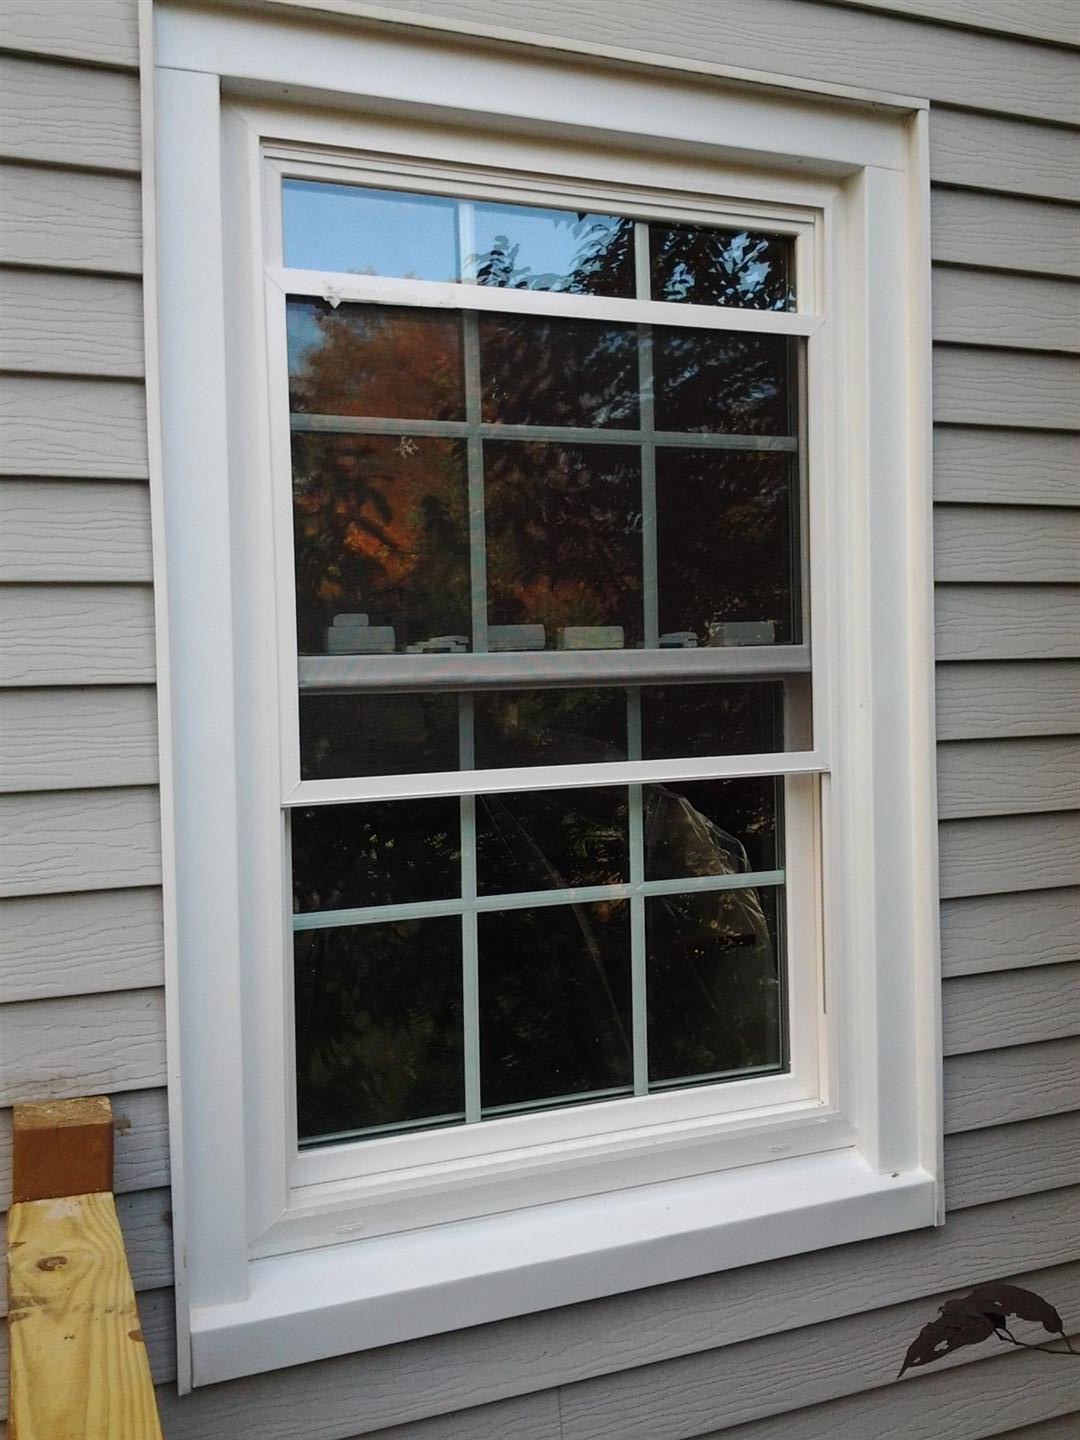 Call m m construction specialist at 908 378 5951 to for Installing vinyl replacement windows